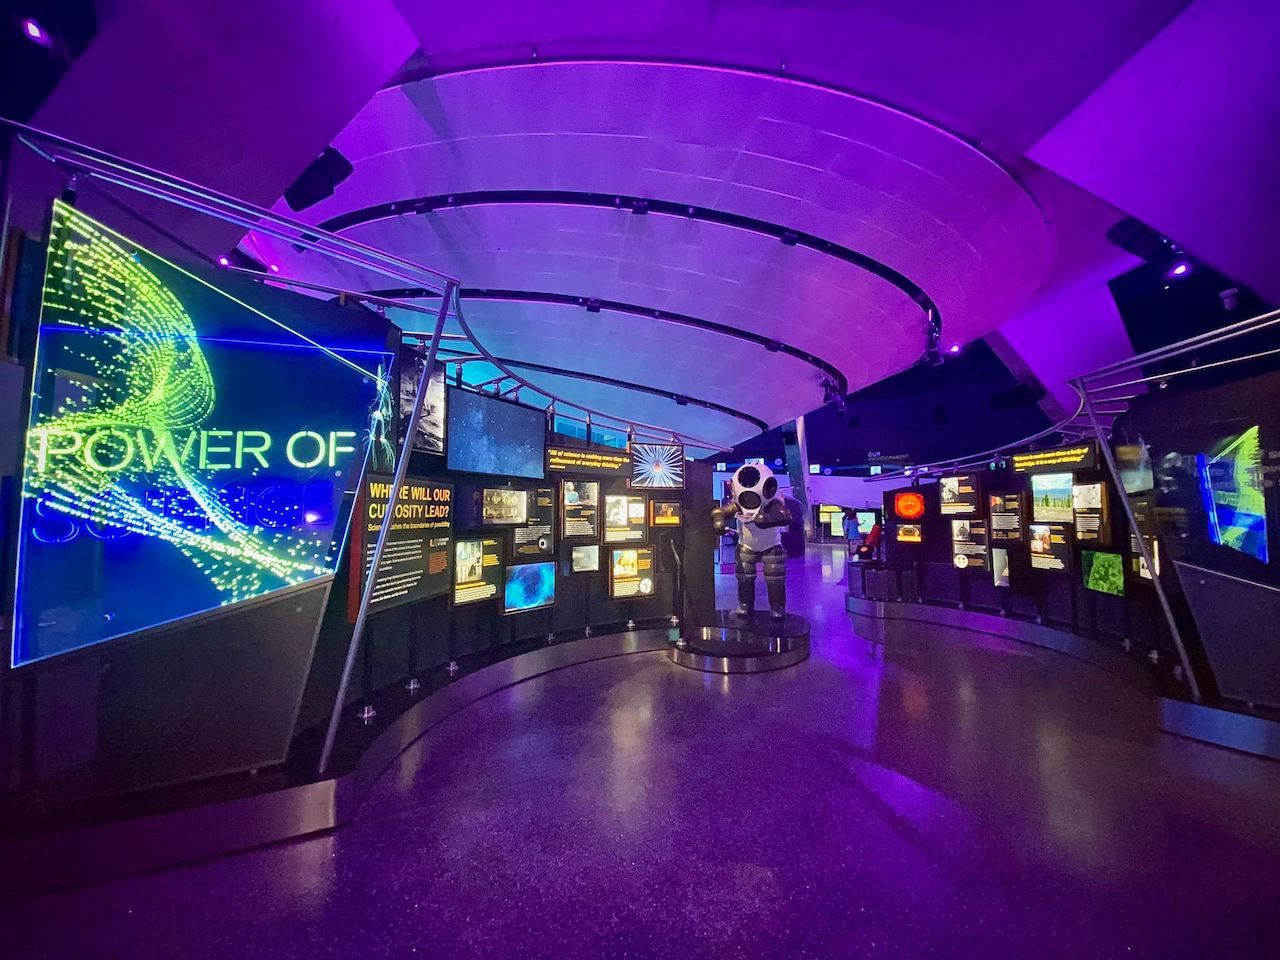 Power of science exhibit at the Frost Museum of Science